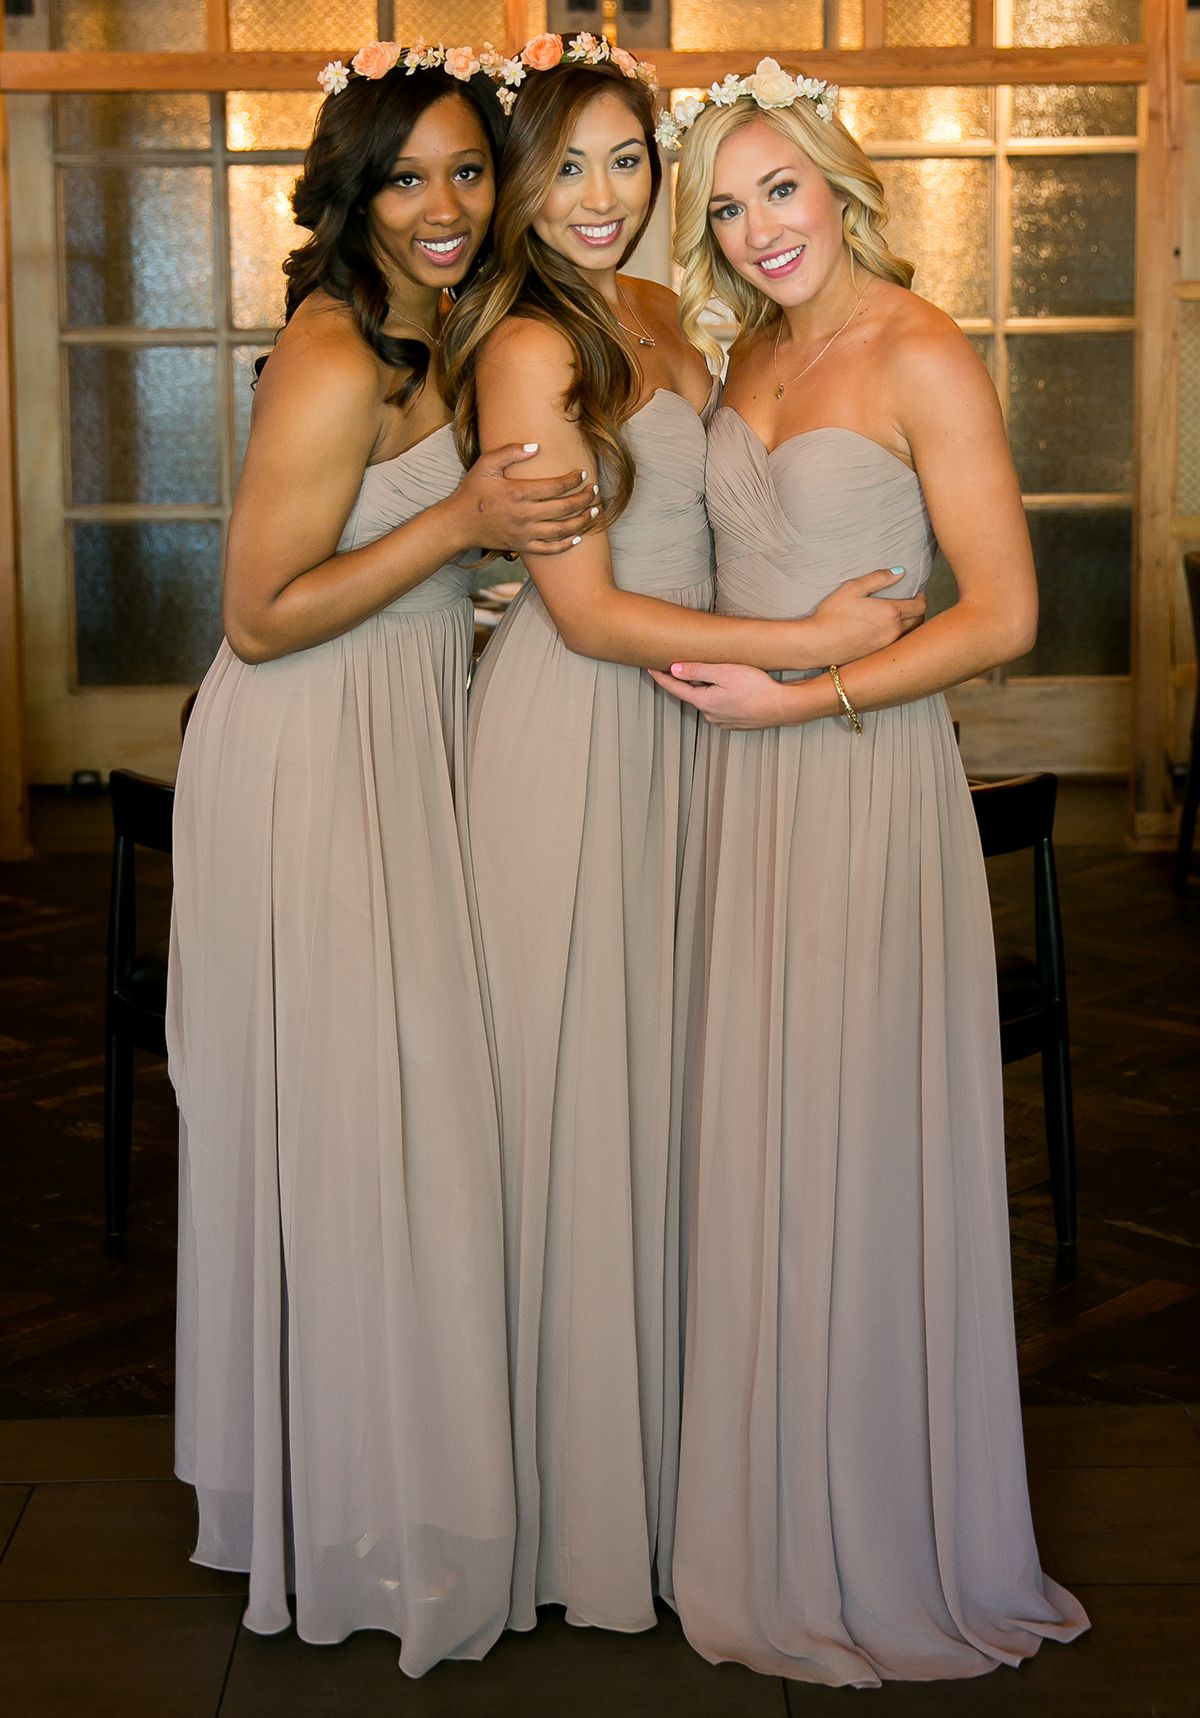 Shoprevelry grey floor length bridesmaid dresses bridesmaids shoprevelry grey floor length bridesmaid dresses ombrellifo Choice Image